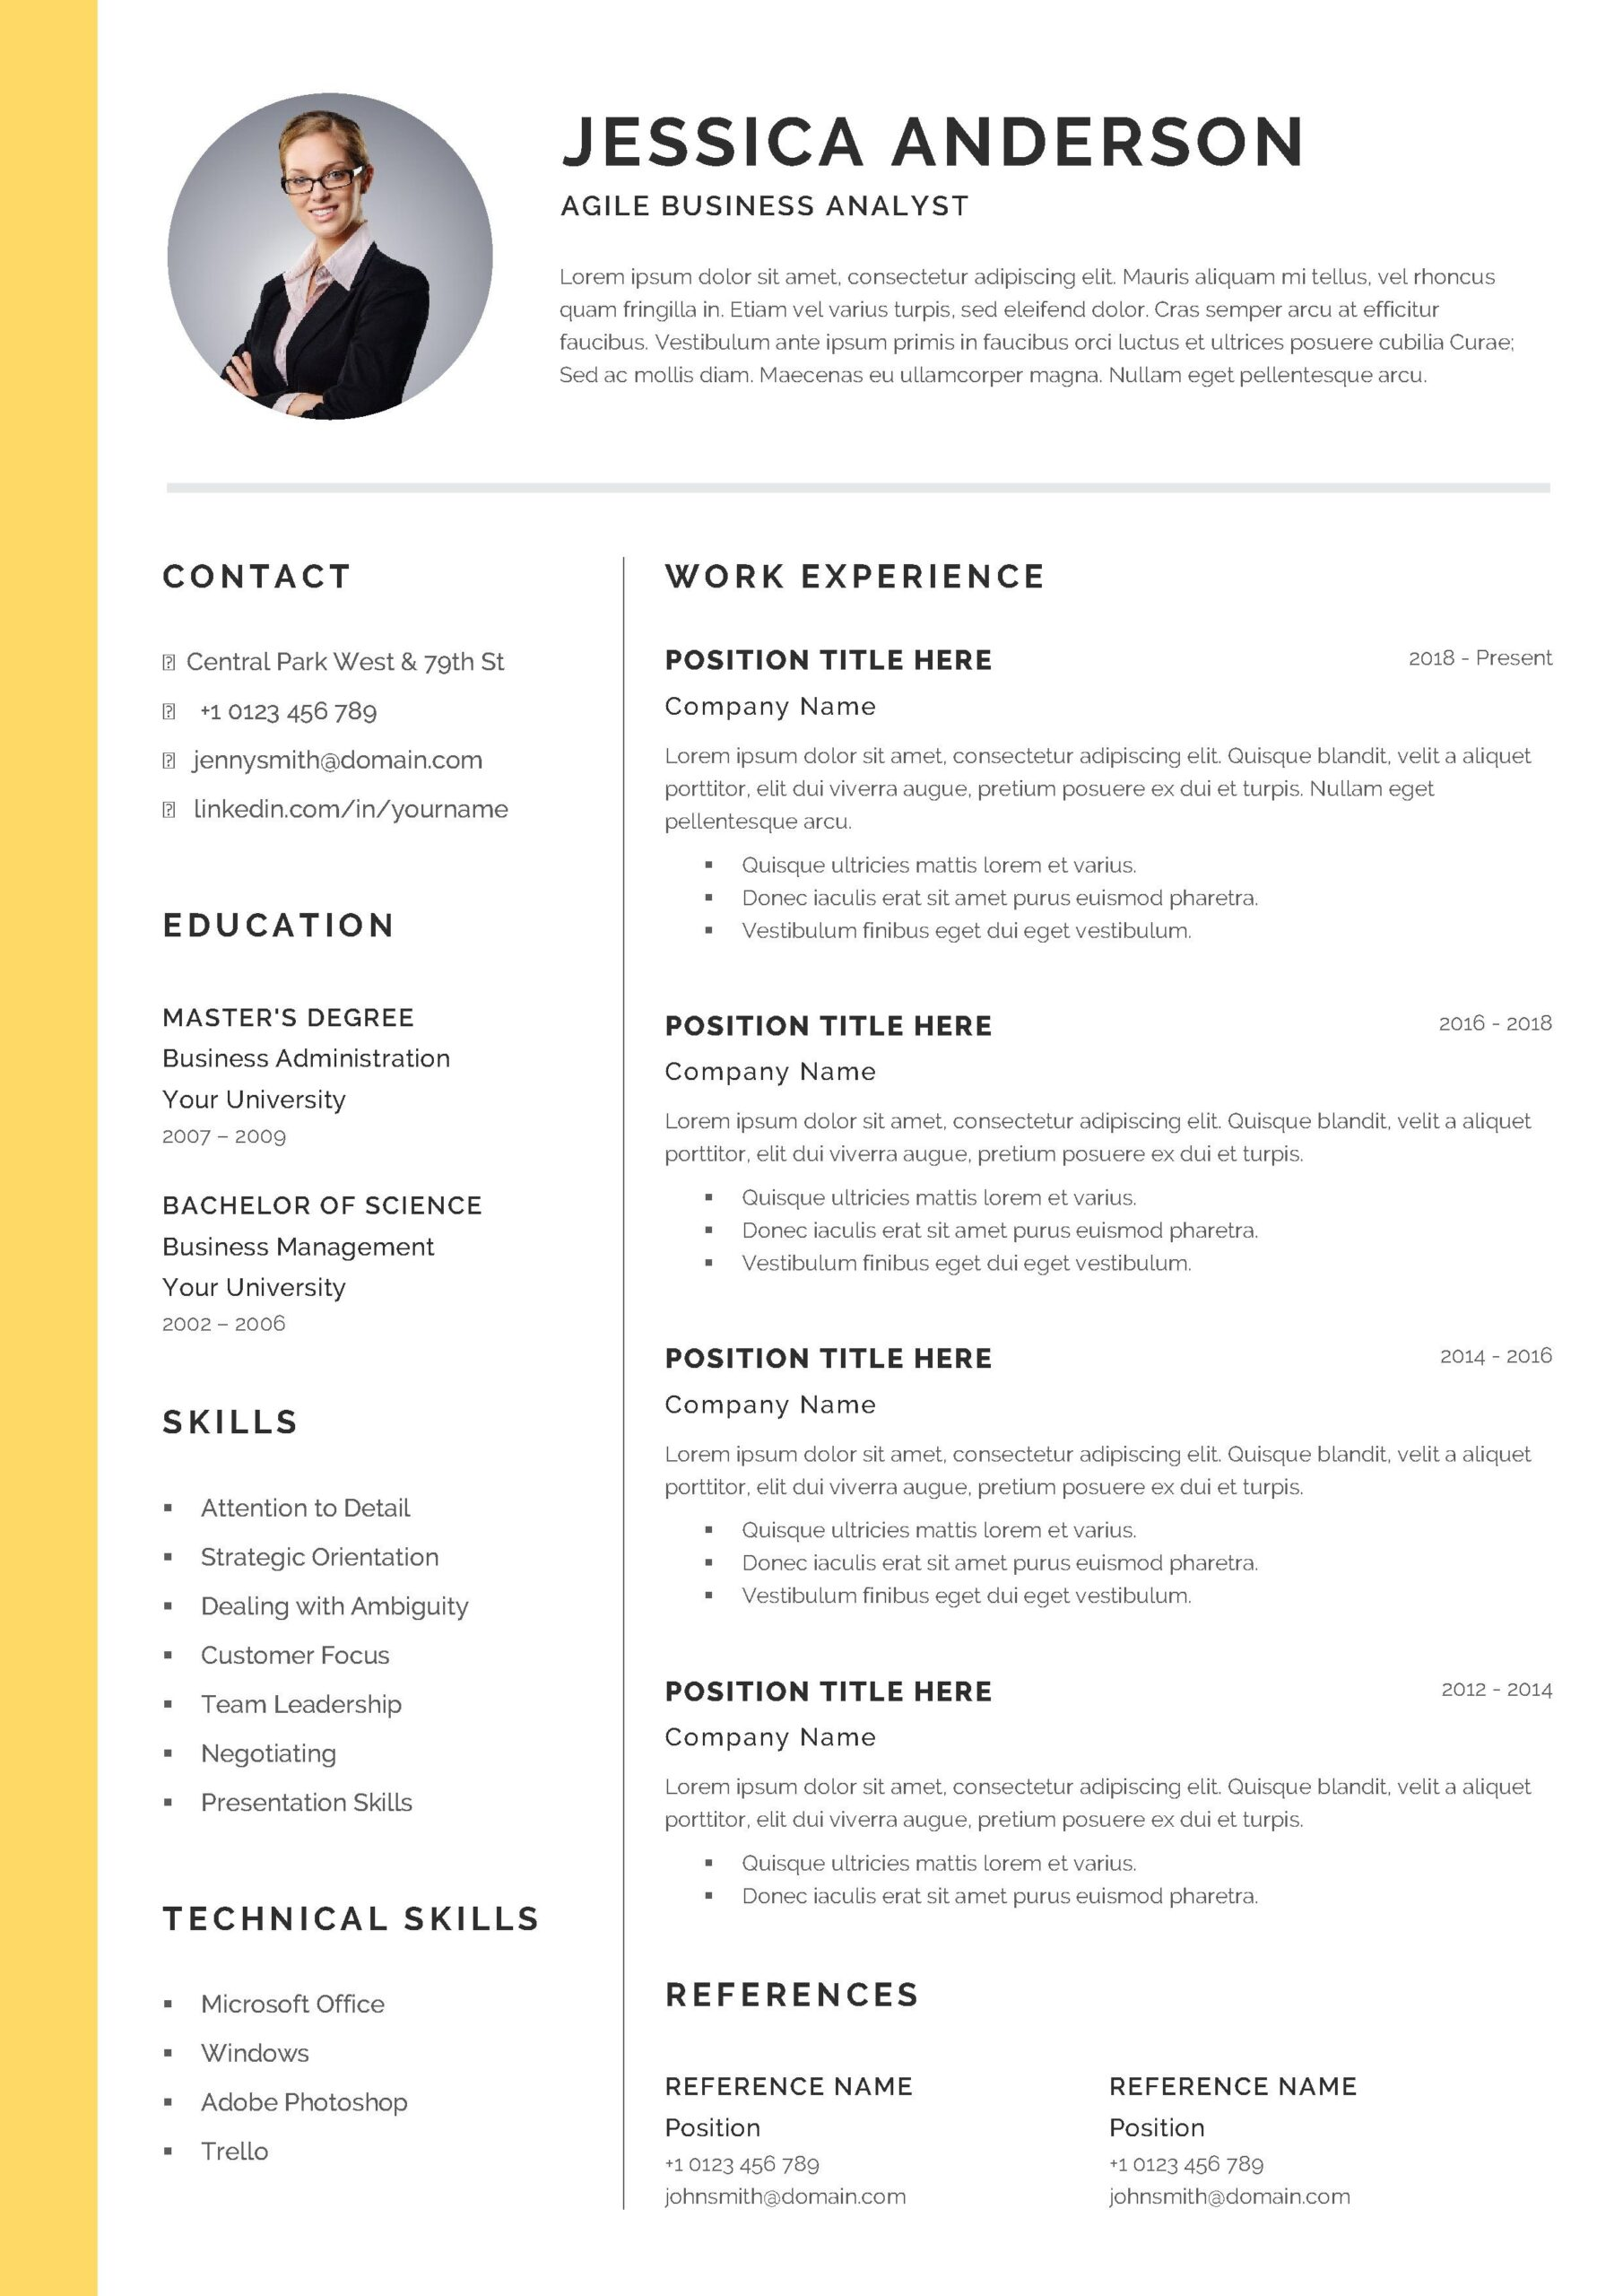 free agile business analyst cv resume template sample firefighter promotion best services Resume Business Analyst Agile Resume Sample